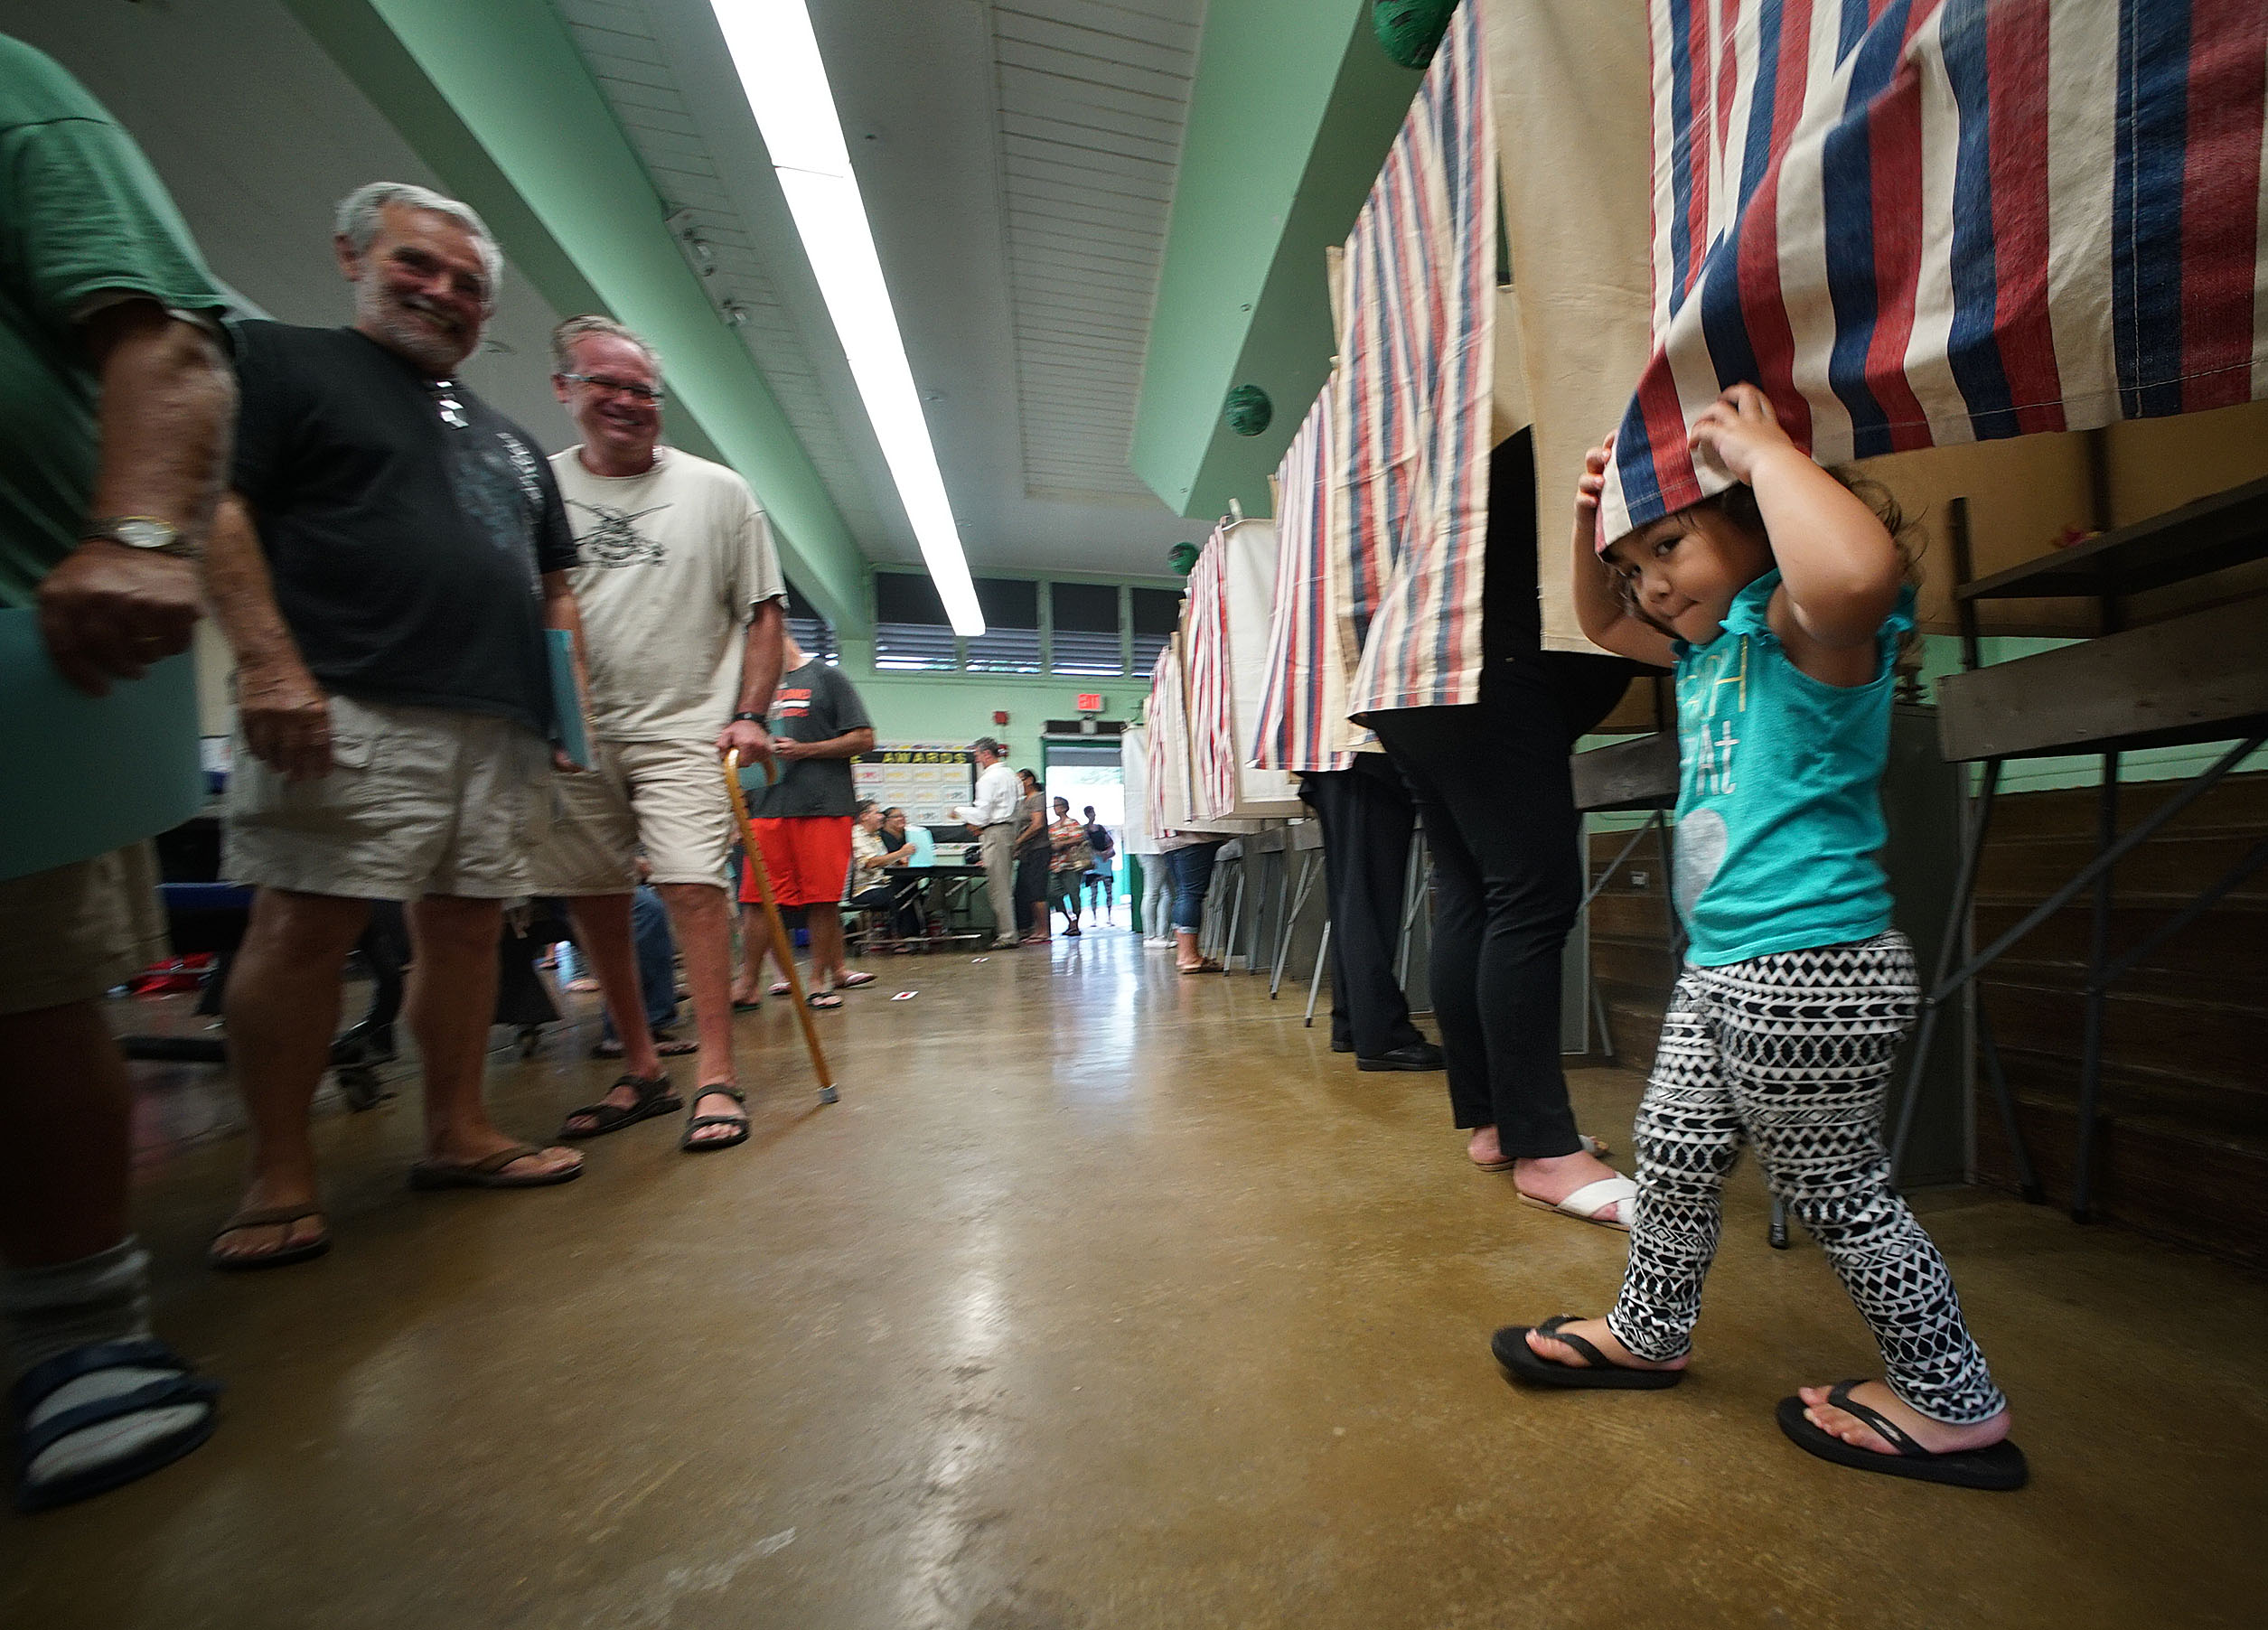 <p>Ireland Tuiono, 2, enjoyed a polling booth while mother Kerrianne Tuiono cast her ballot Hauula Elementary. — Cory Lum/Civil Beat</p>